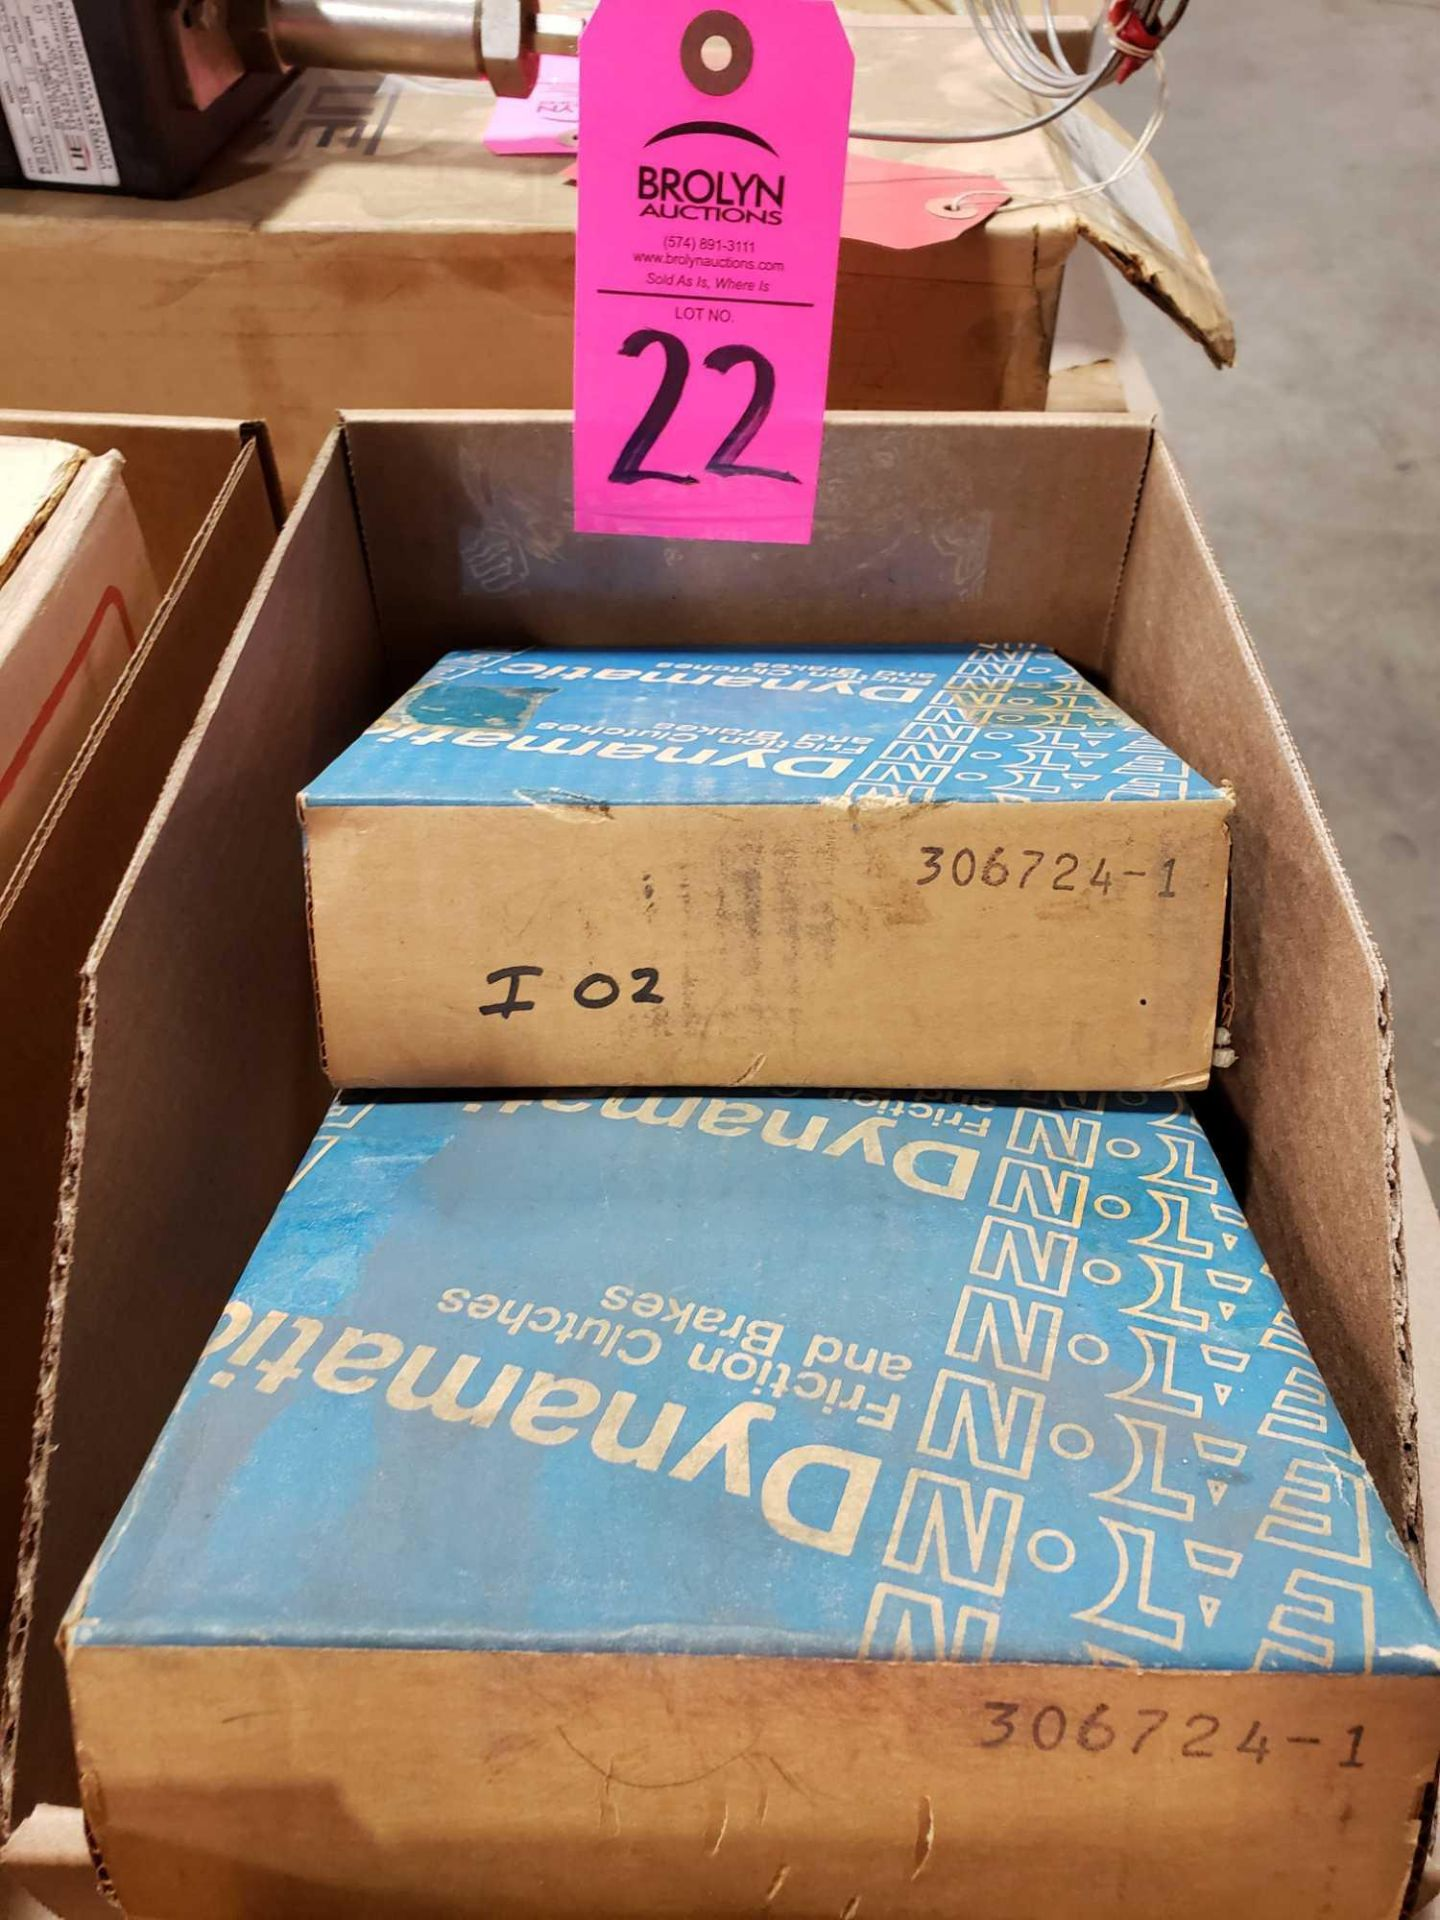 Lot 22 - Qty 2 - Dynatorq parts as pictured. New in box.